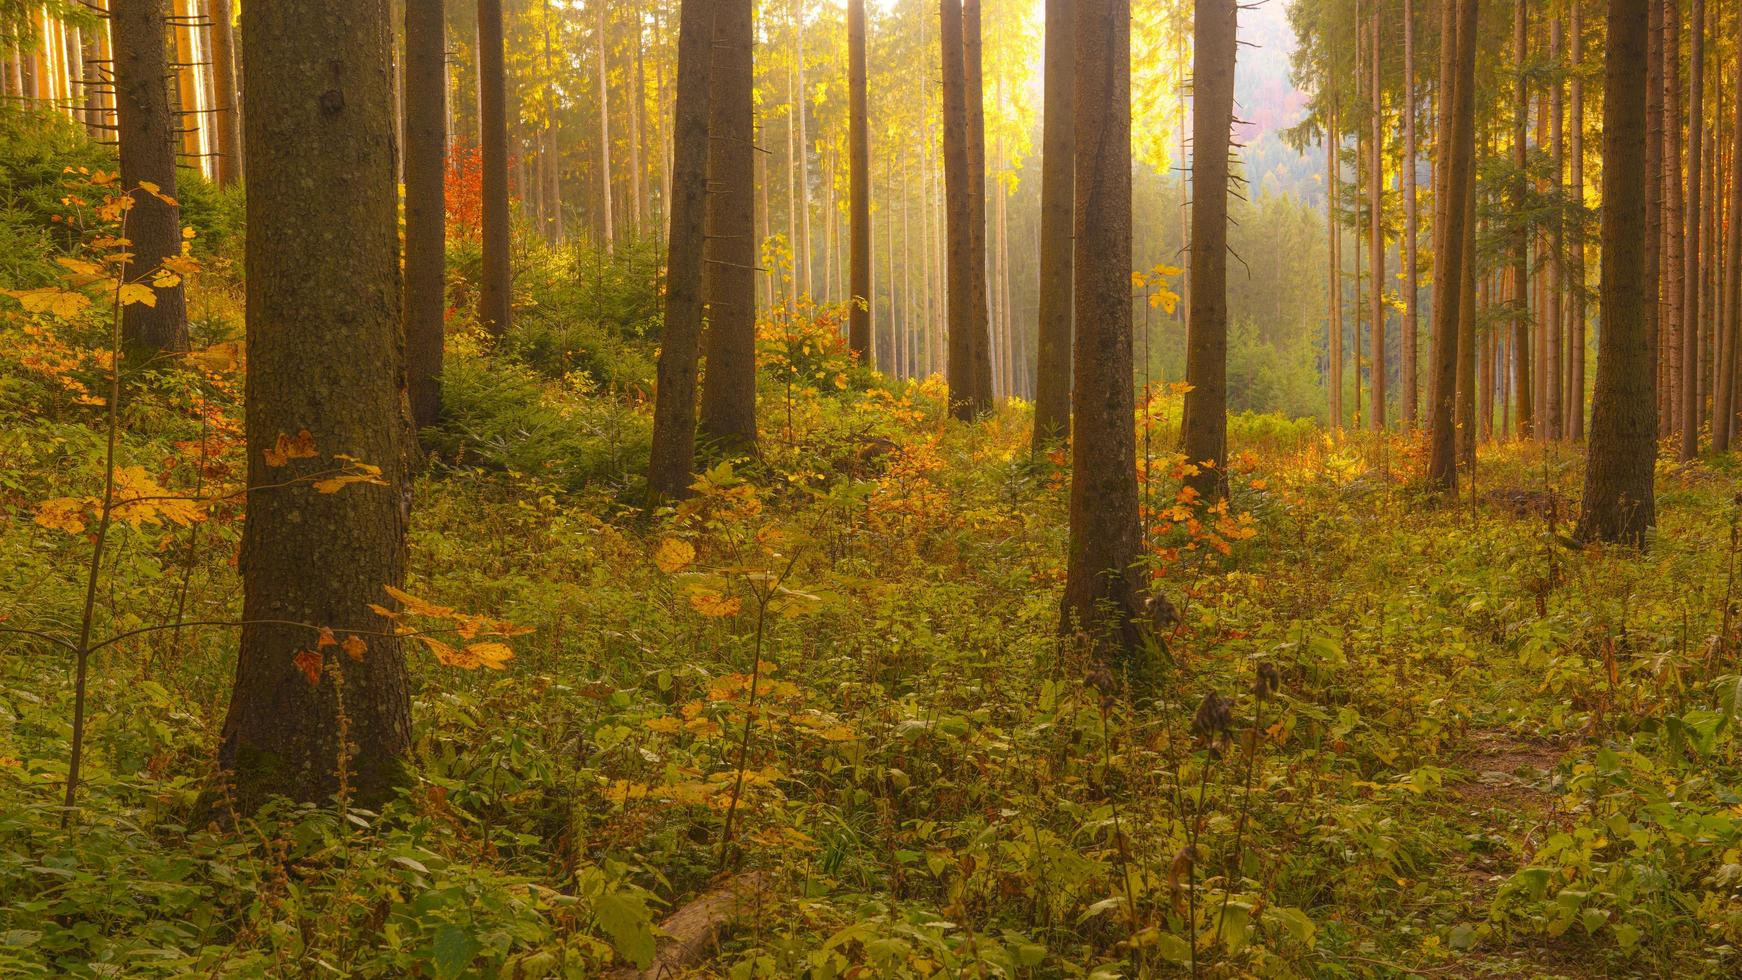 Autumnal scene in the forest photo